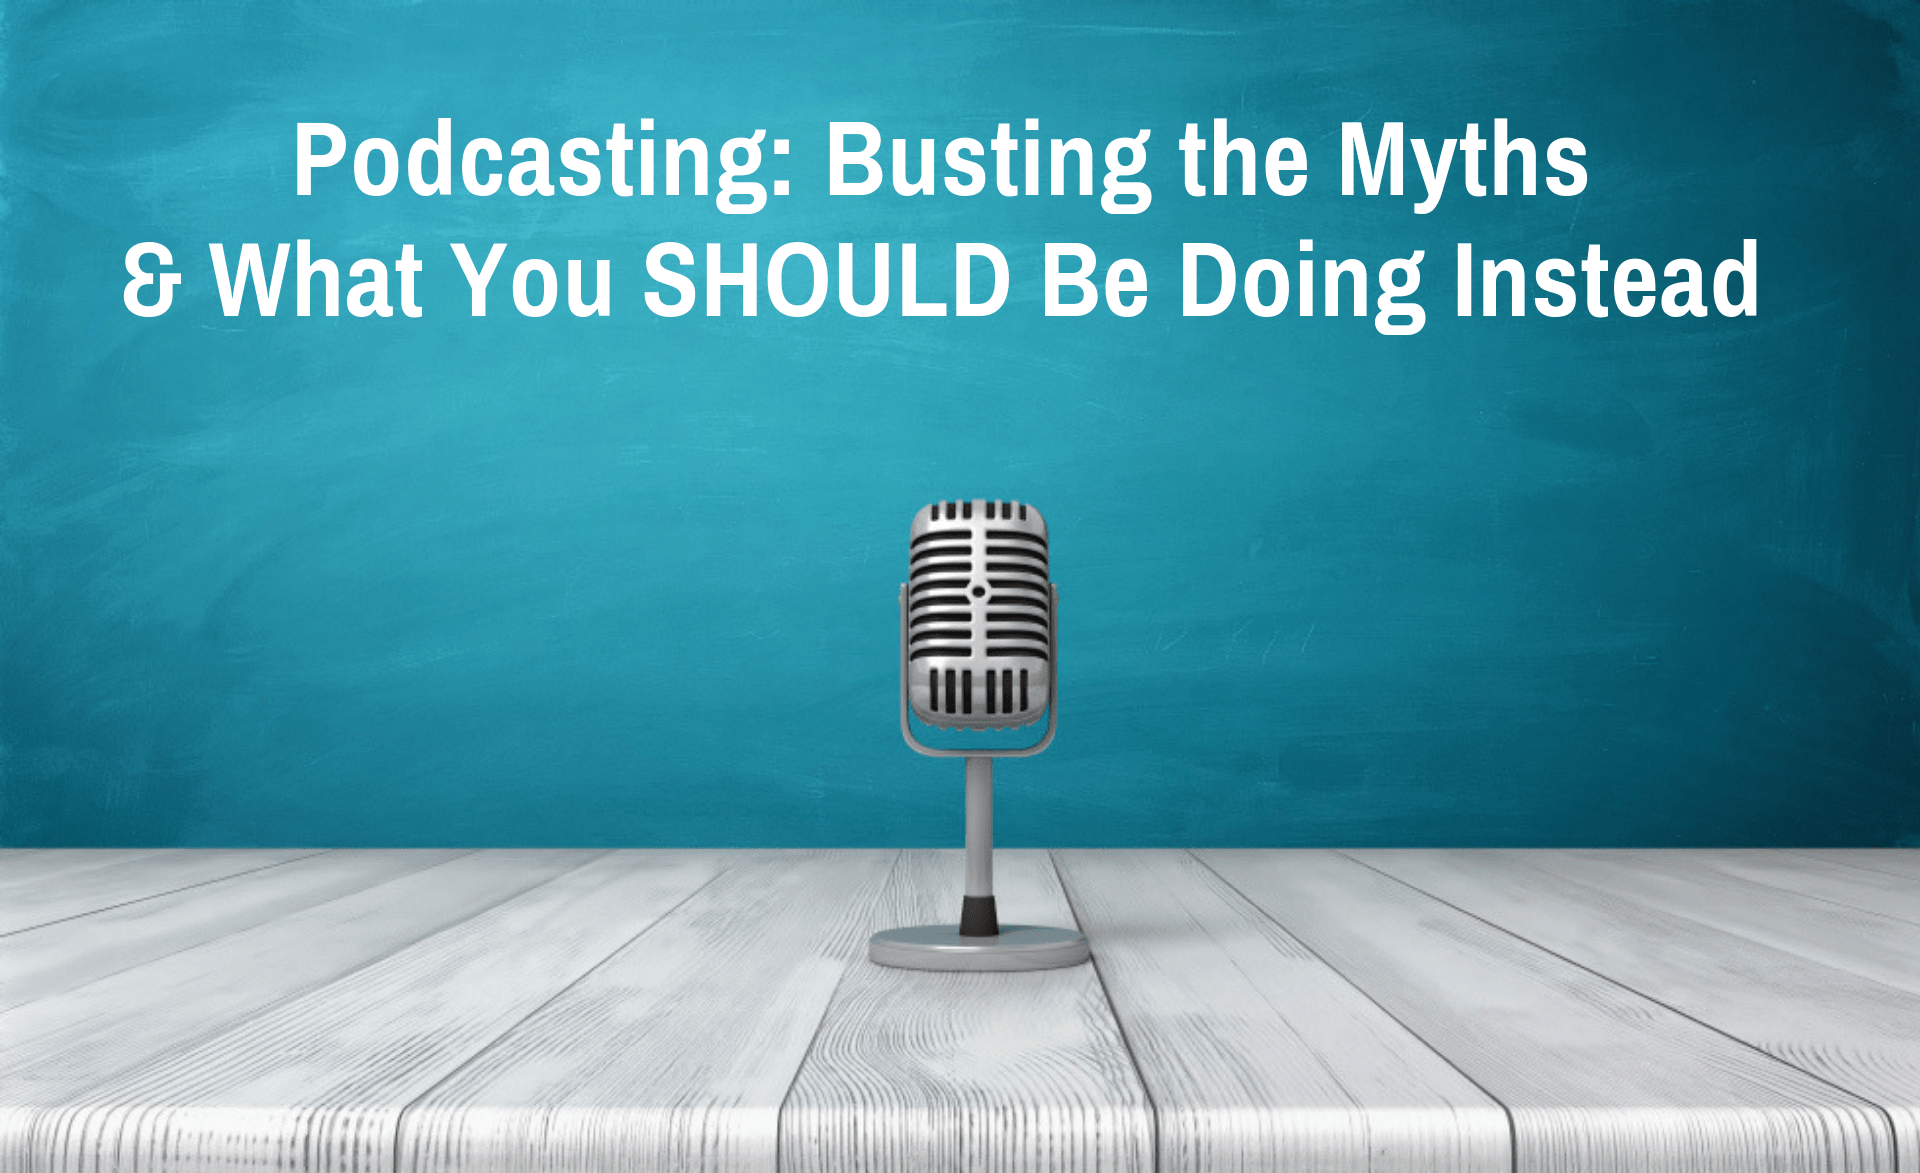 Podcasting Busting the Myths